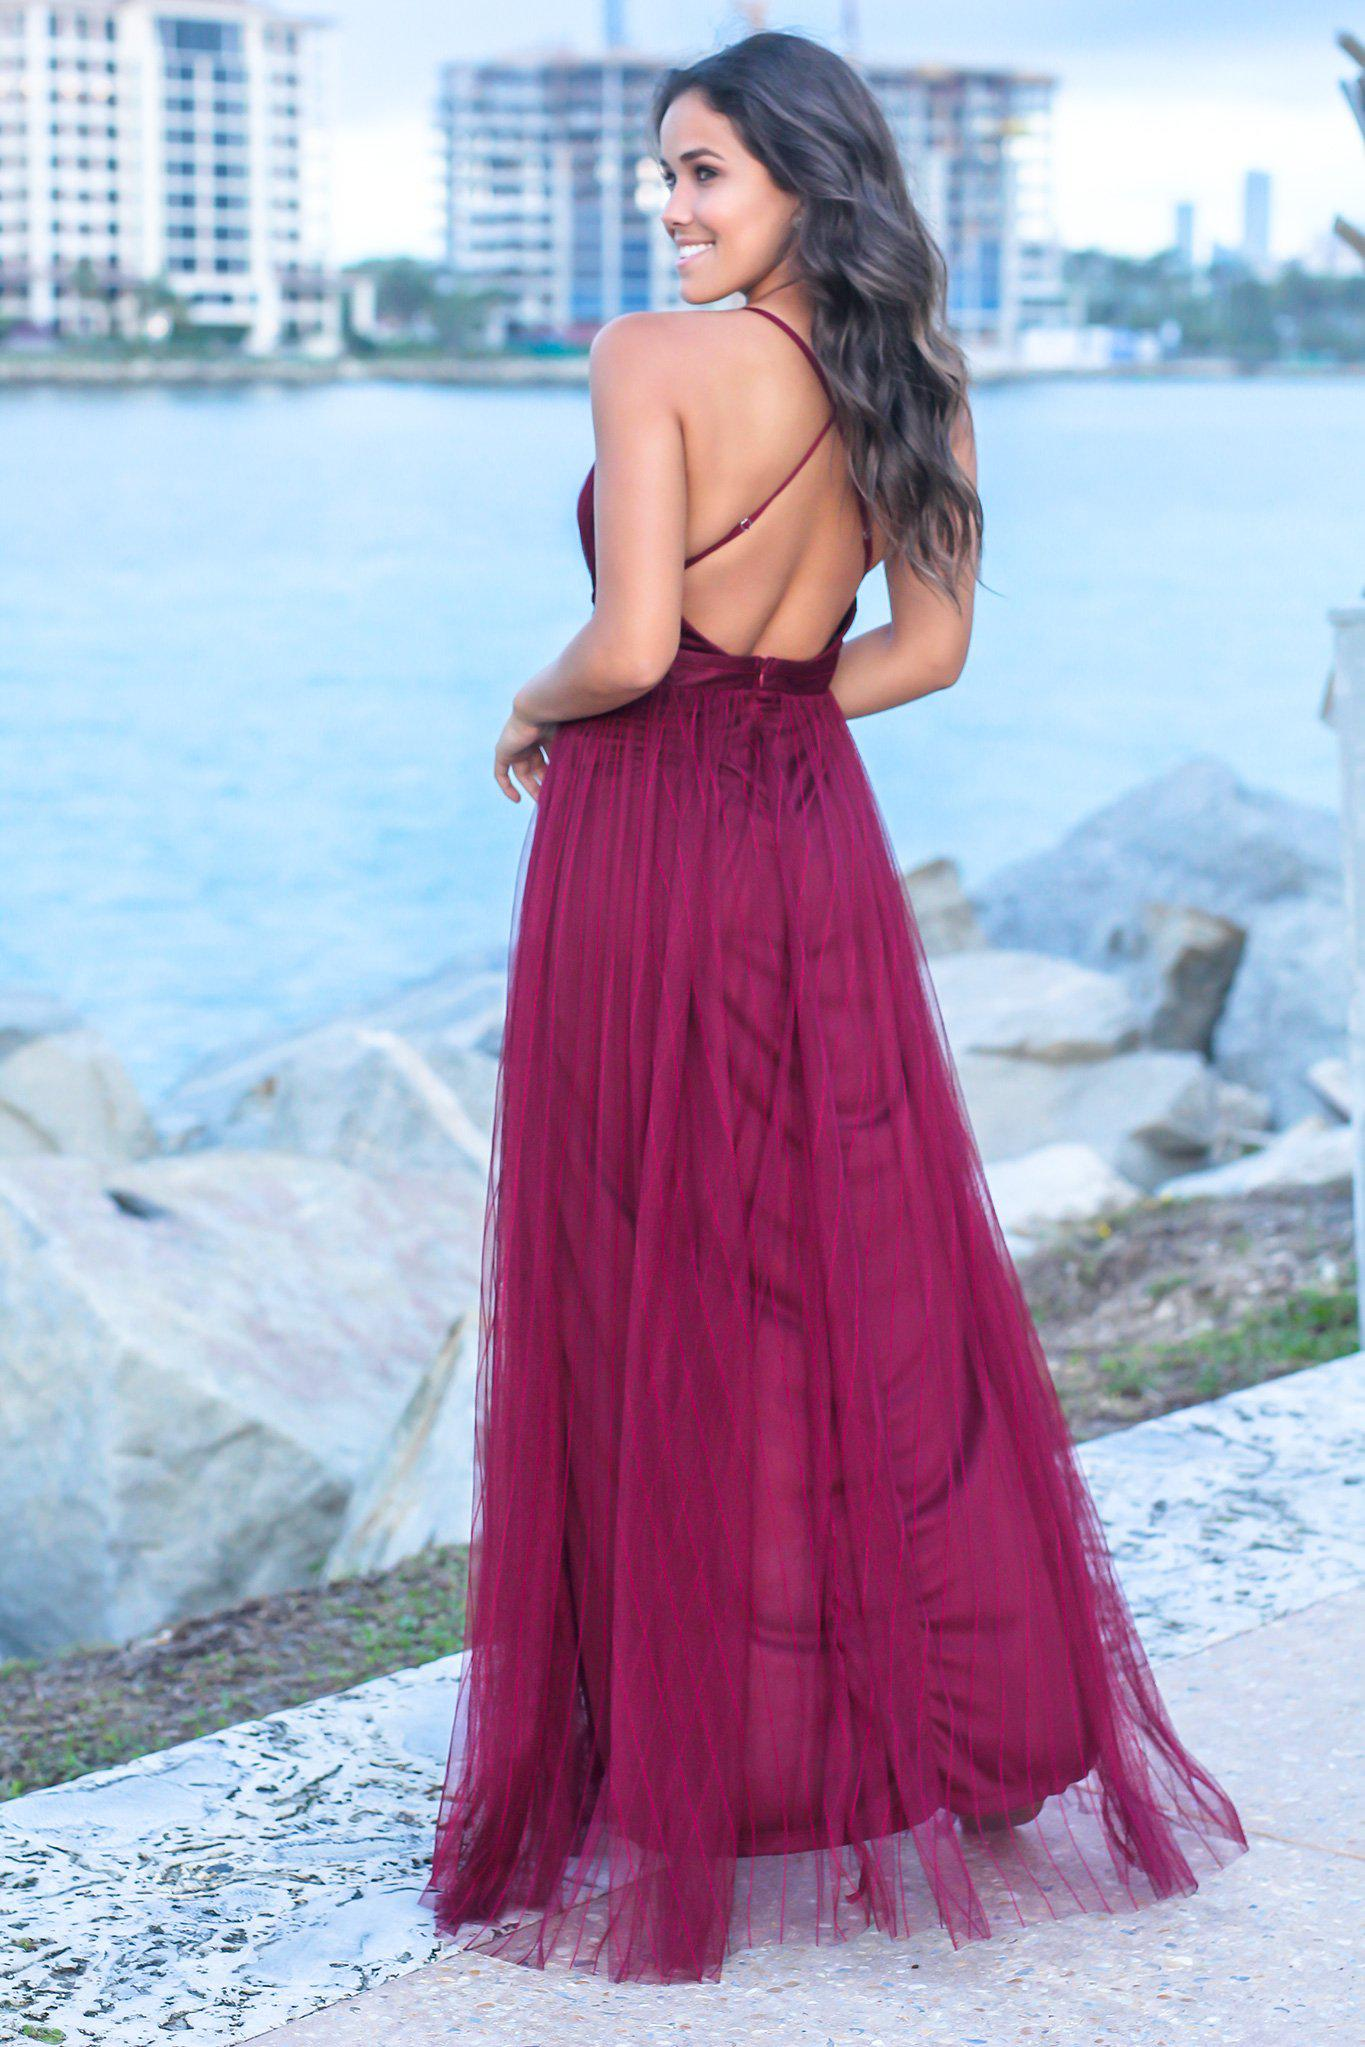 Wine Pinstripe Tulle Maxi Dress with Criss Cross Back